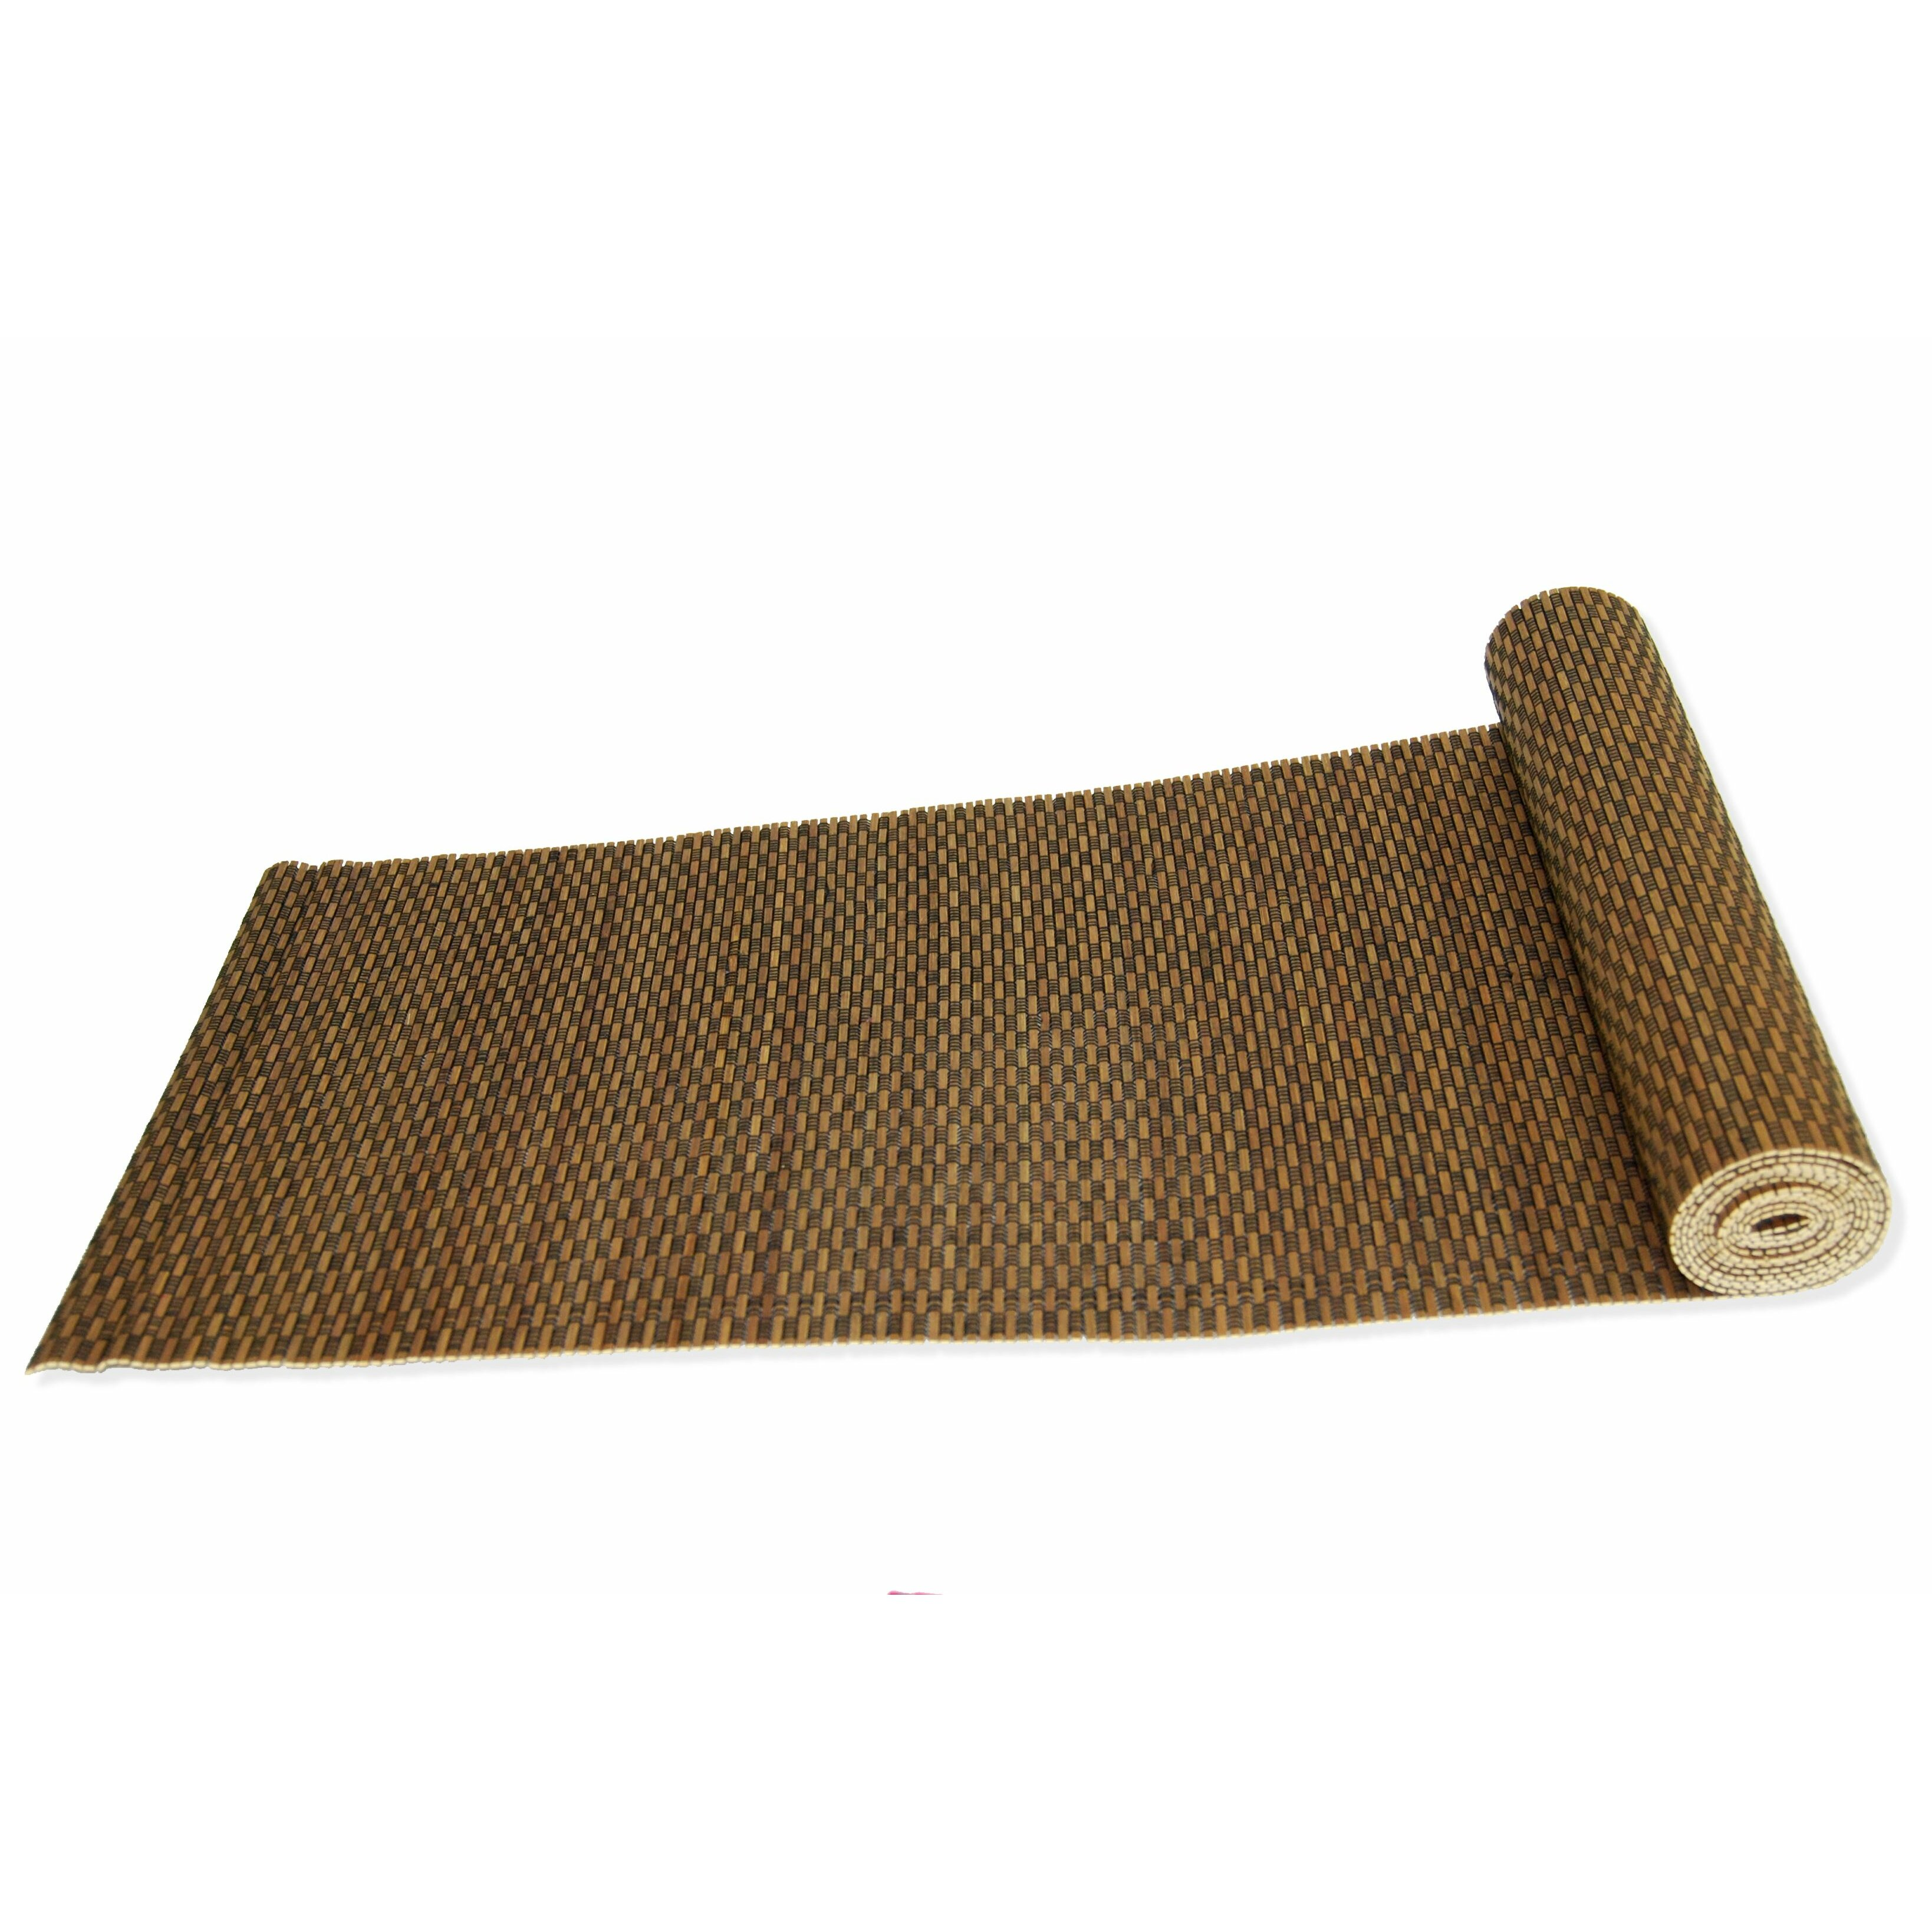 Bamboo table runner - Versailles Home Fashions Bamboo Table Runner